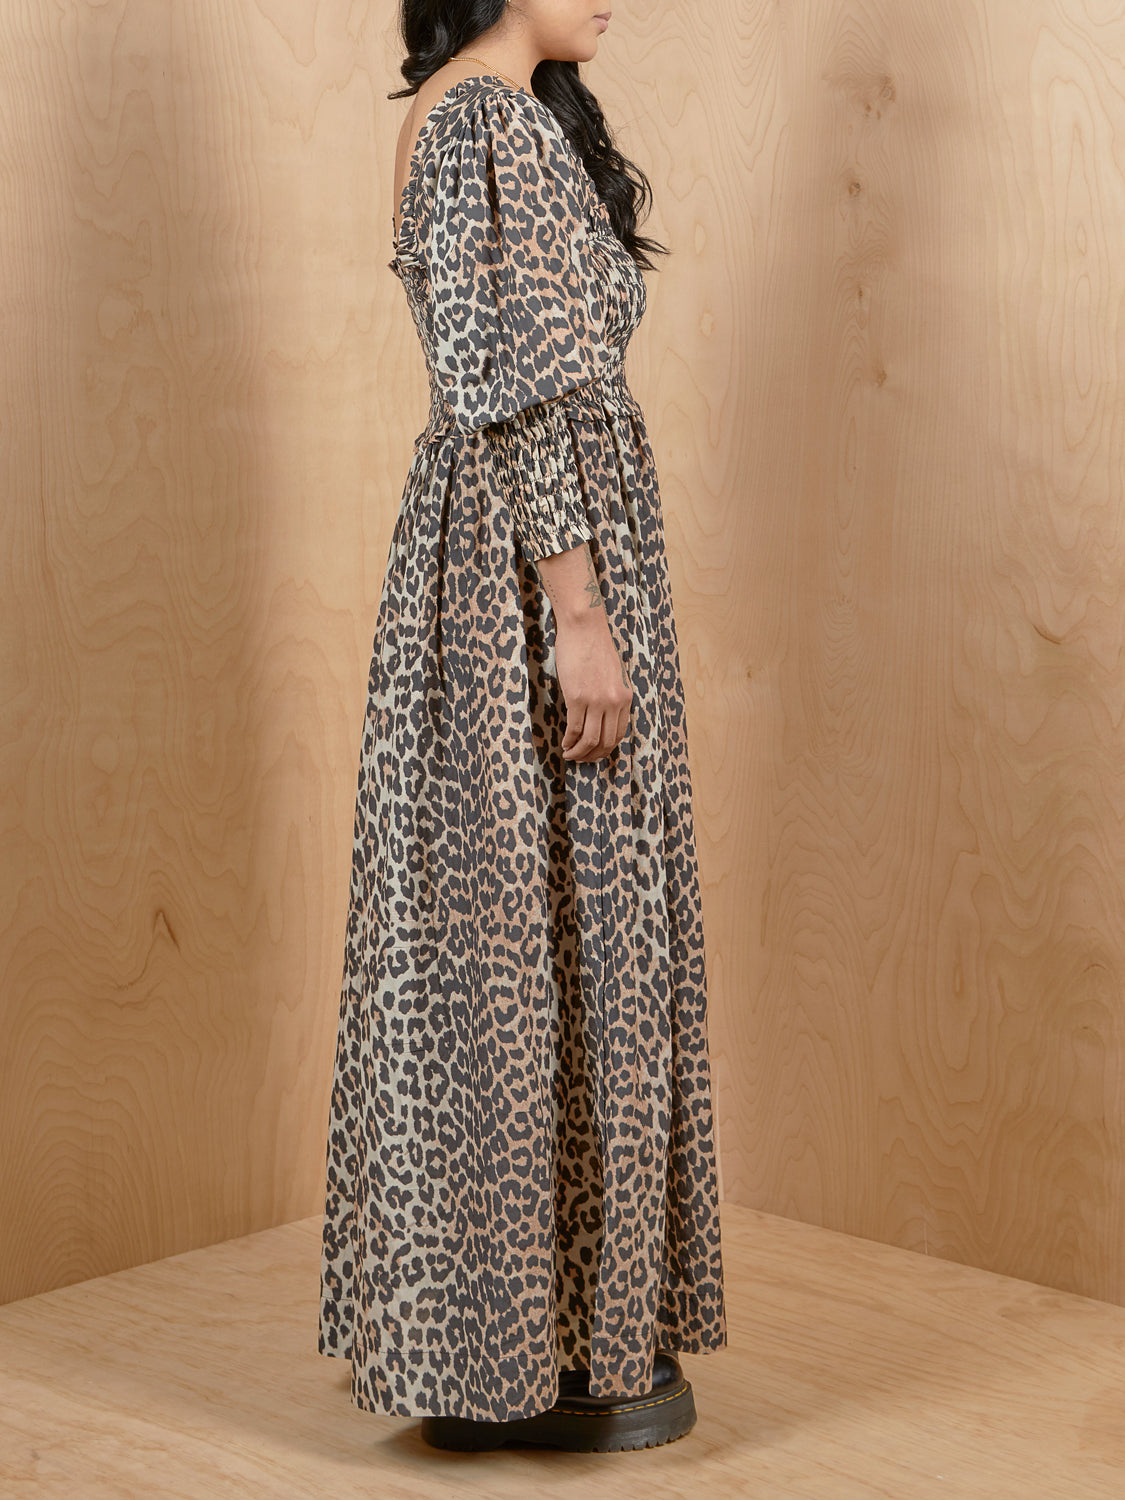 GANNI Leopard Smocked Dress